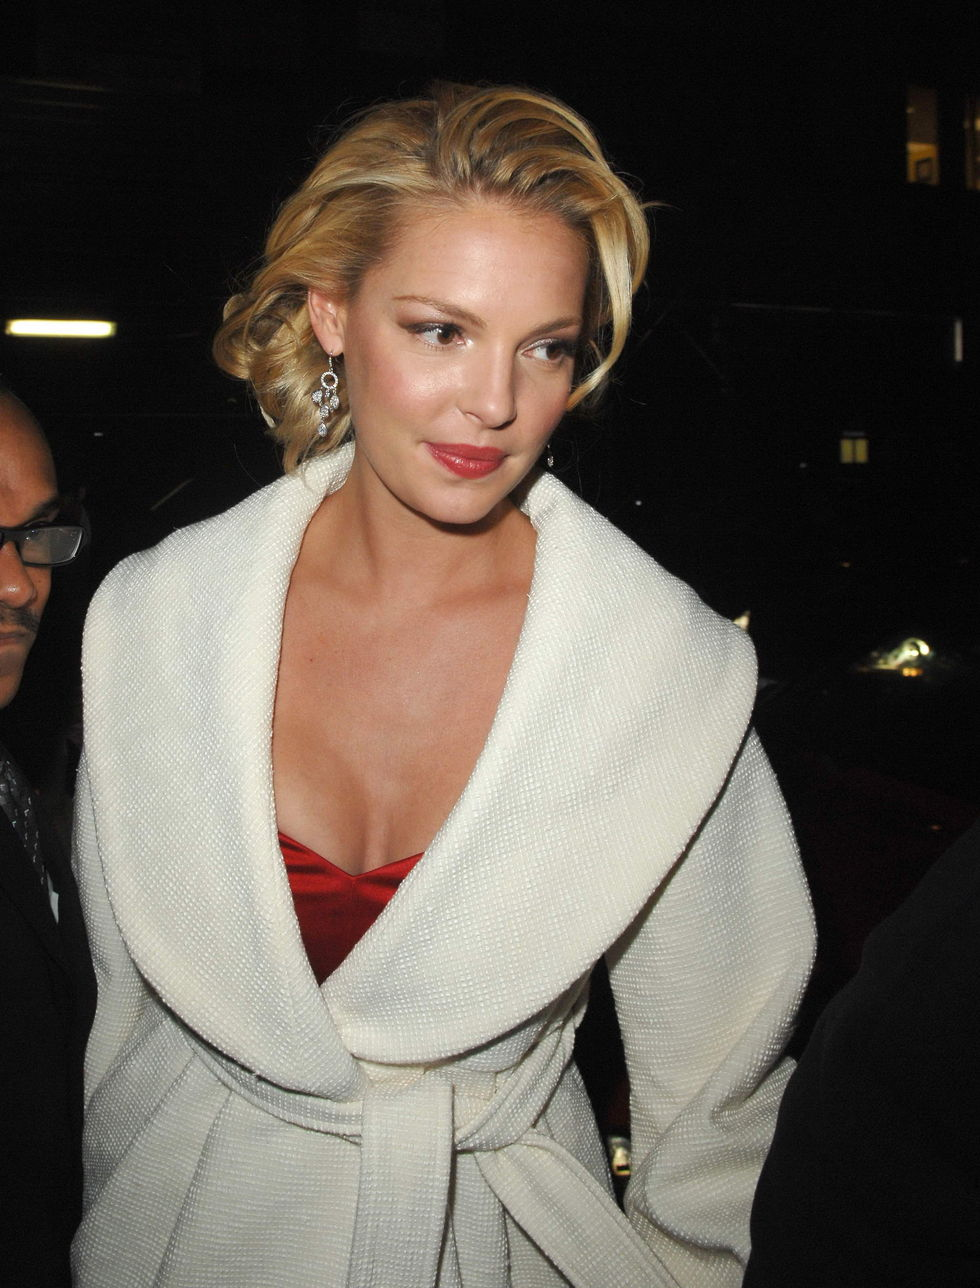 katherine-heigl-arrives-at-the-late-show-with-david-letterman-01